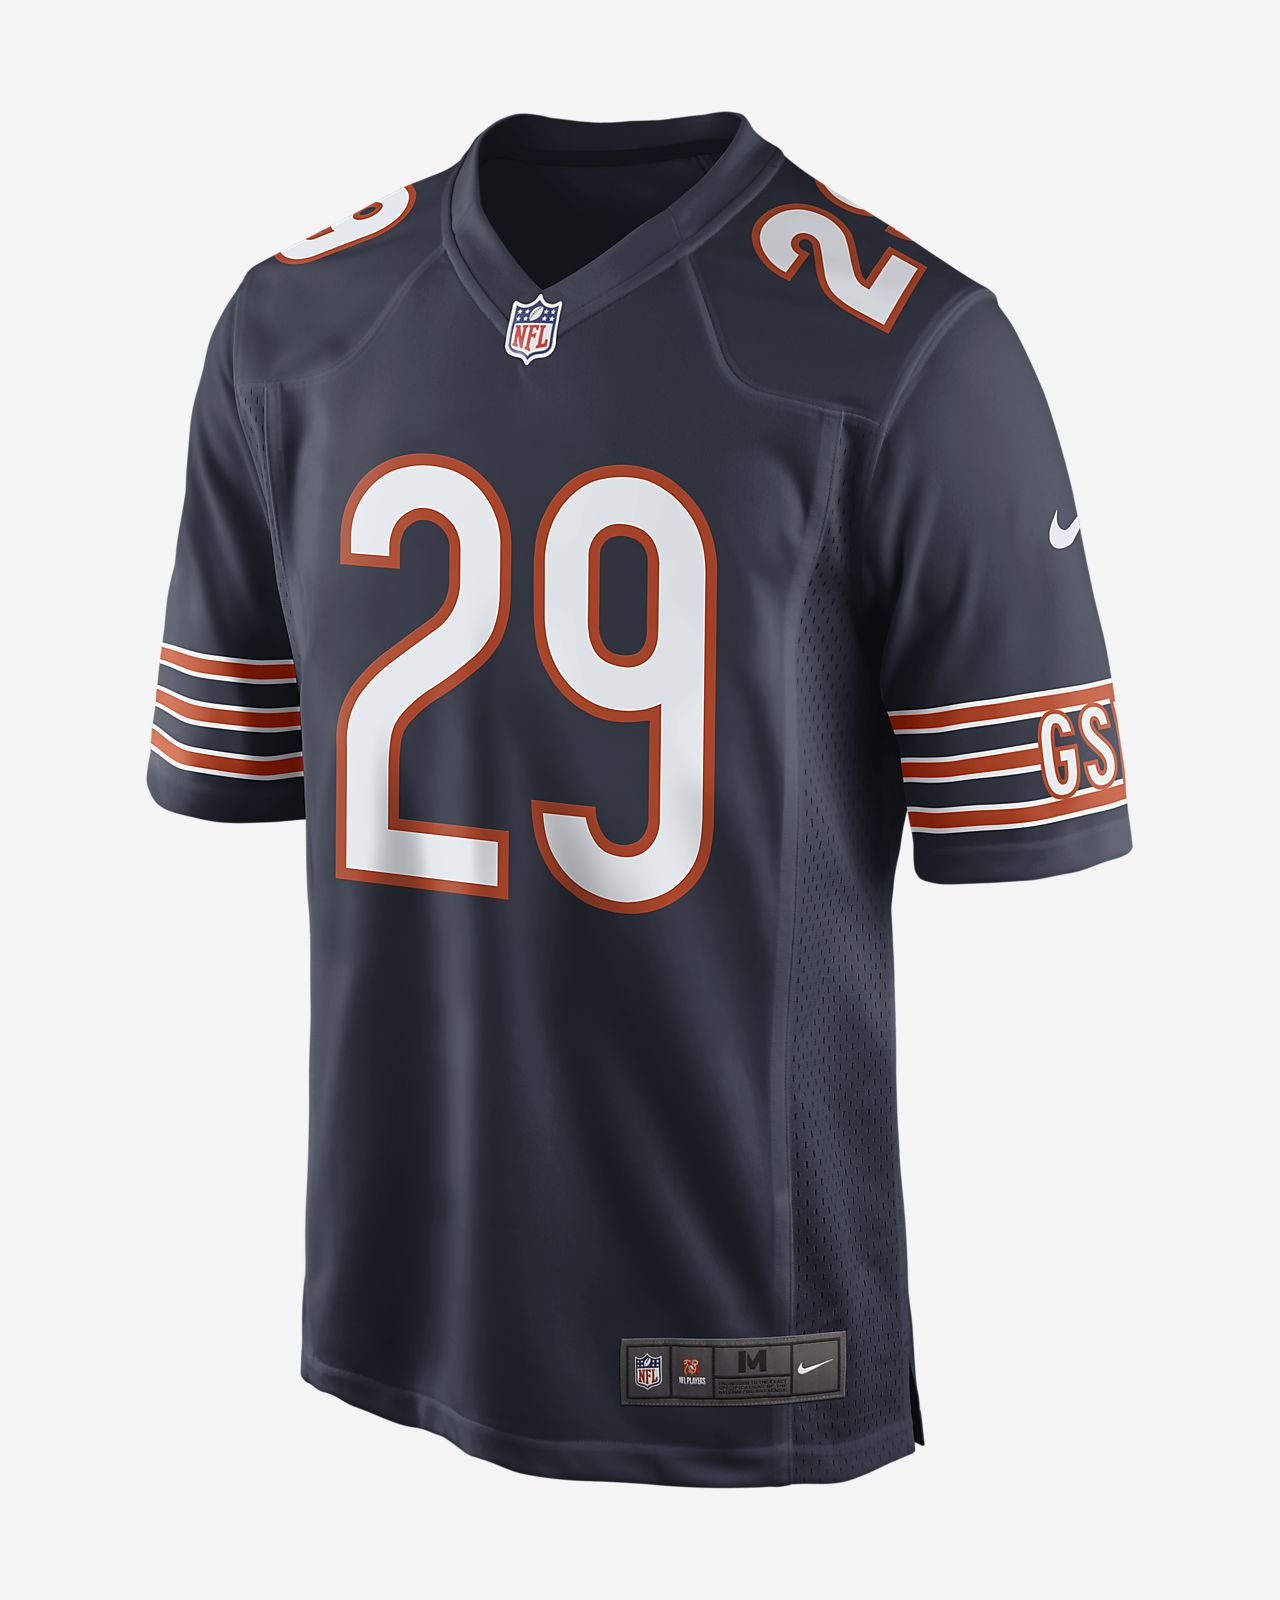 NFL Chicago Bears Men's Game Football Jersey